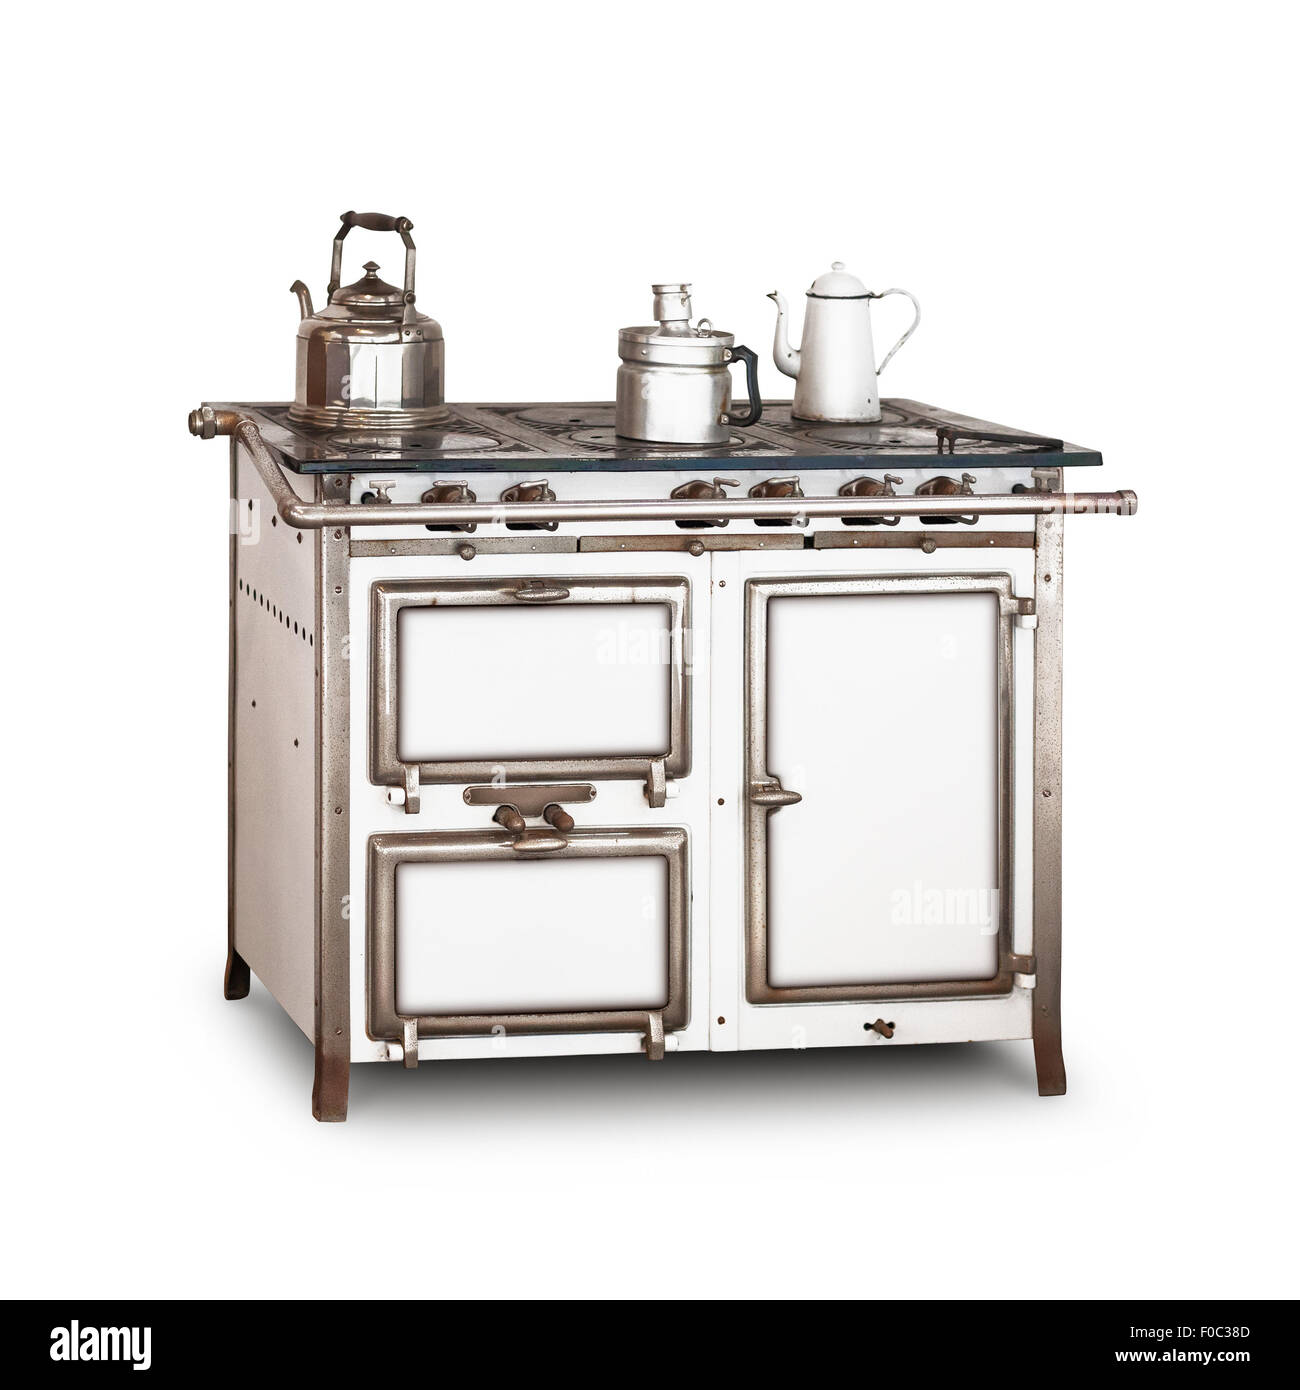 Old gas stove with pot and kettle isolated on white background. Vintage kitchen. Single object with clipping path - Stock Image